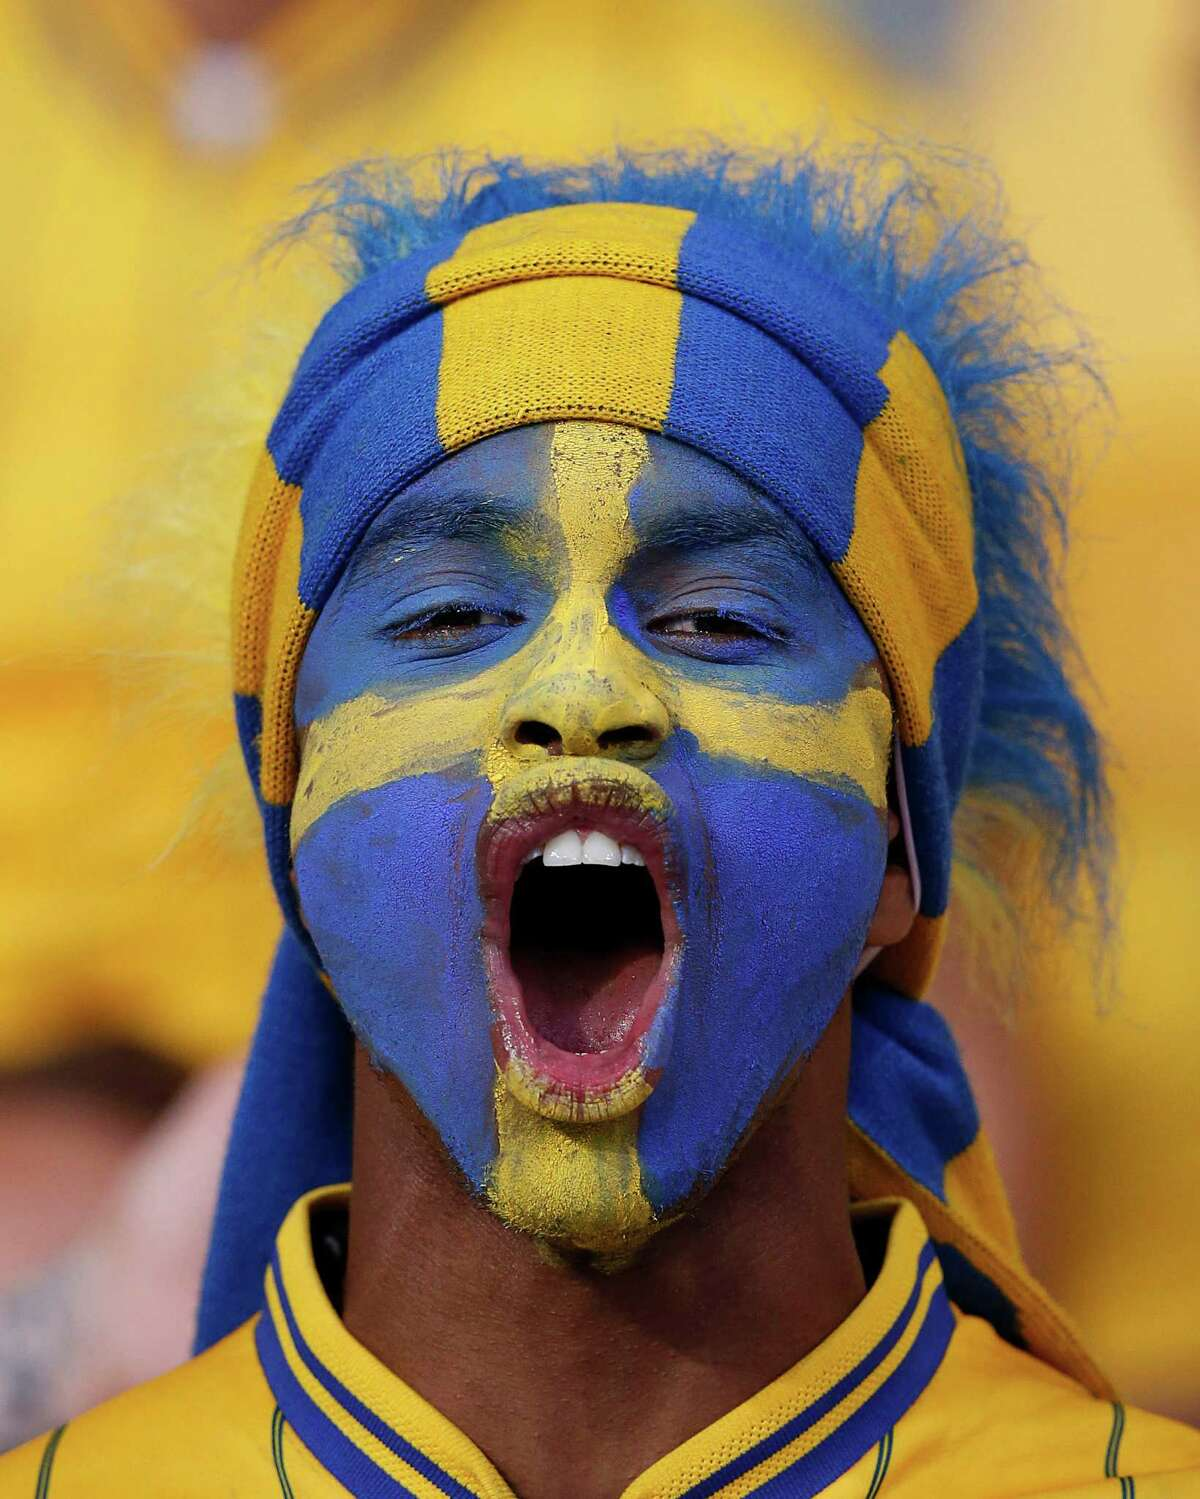 A Swedish fan sings before the Euro 2012 soccer championship Group D match between Sweden and England in Kiev, Ukraine, Friday, June 15, 2012. (AP Photo/Sergei Grits)